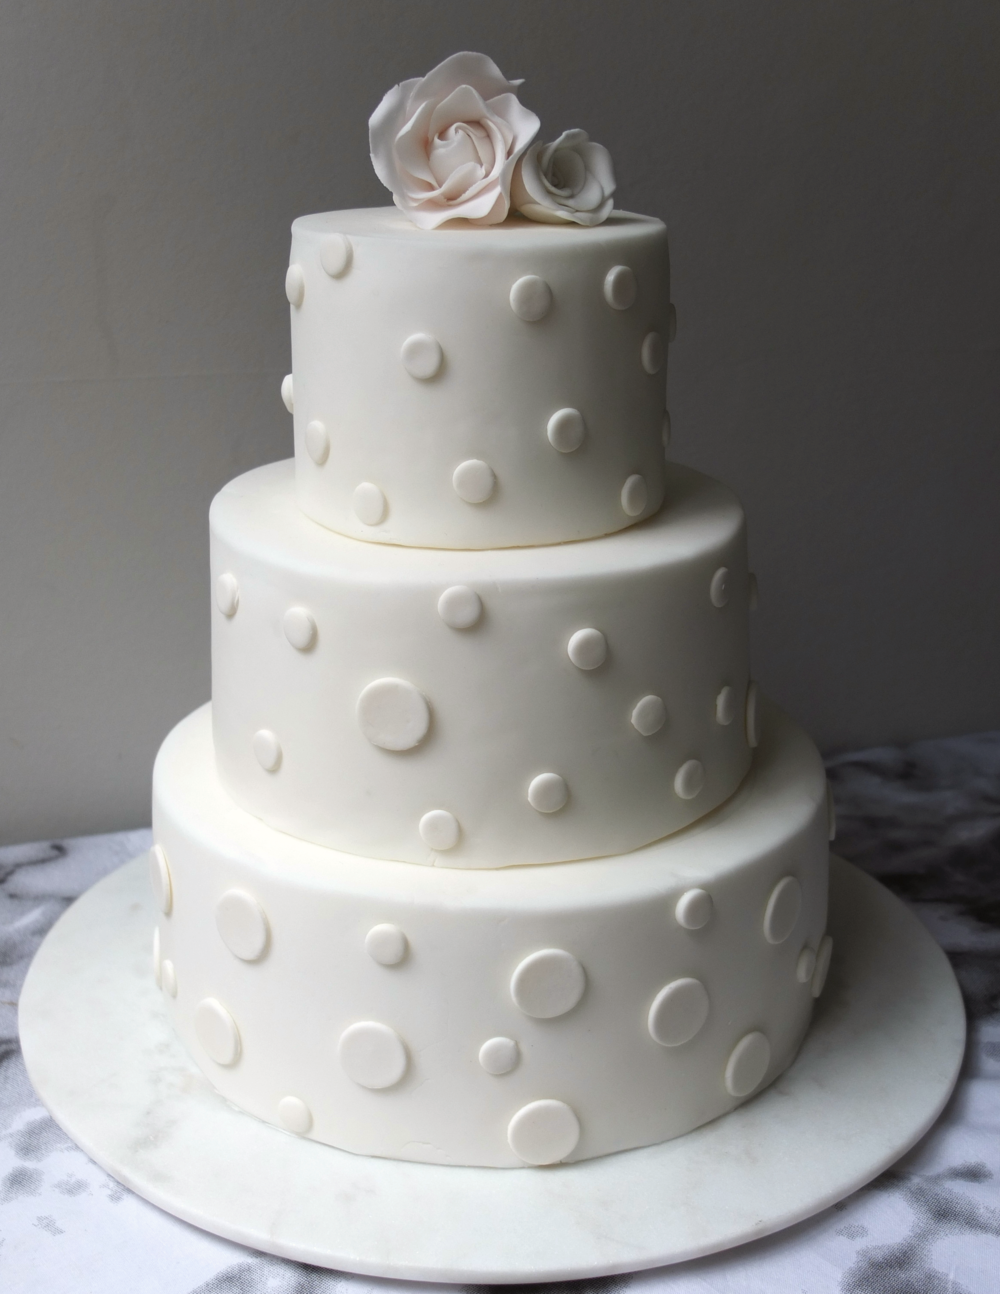 Dots - Abundance cakes wedding cakes